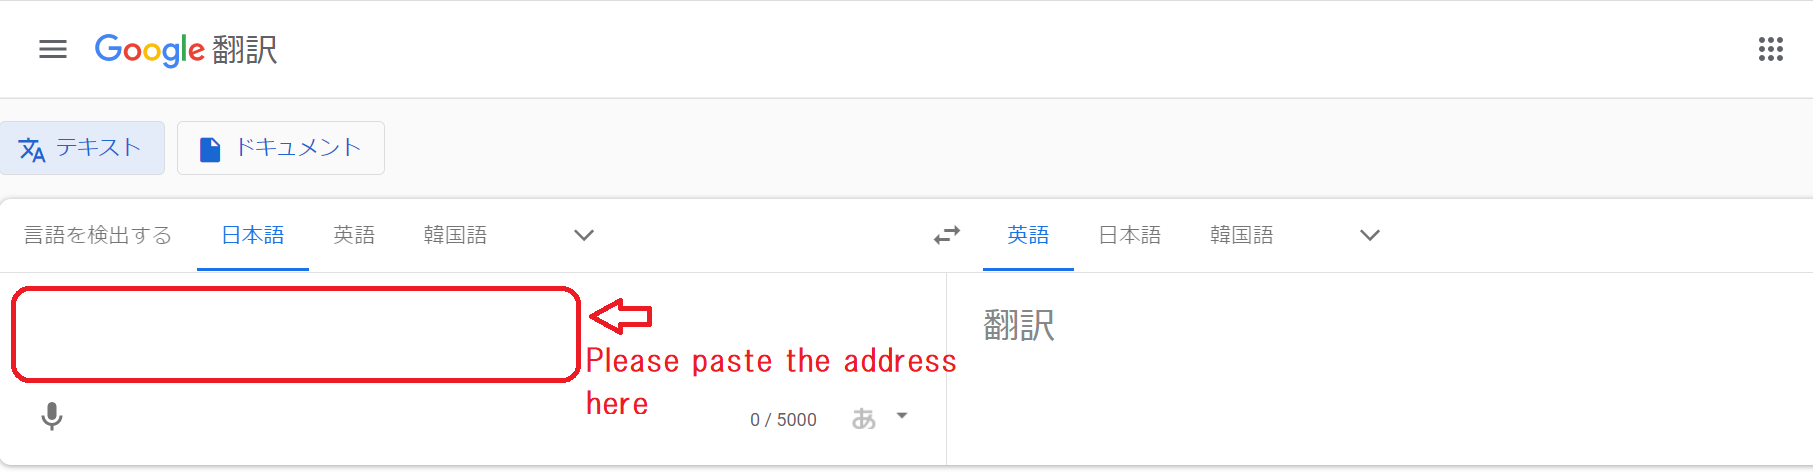 google translate 1 - You can read this website using Google Translate!